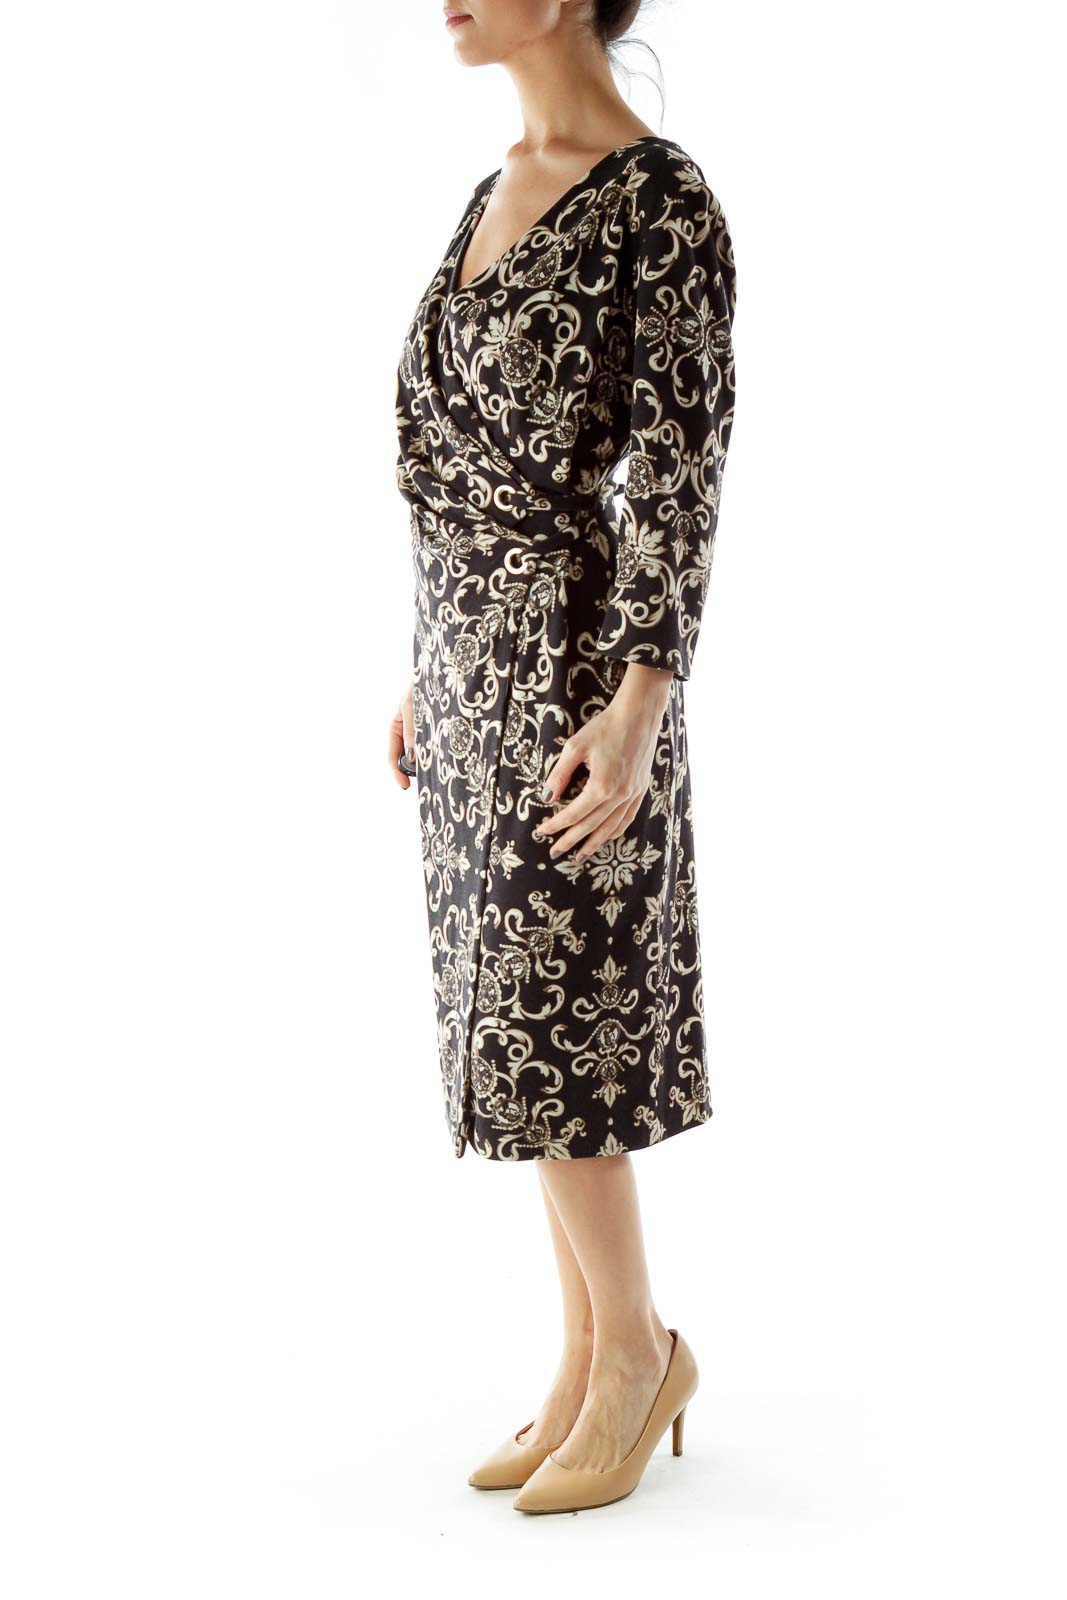 Black Cream V-neck Floral Print Wrap Dress